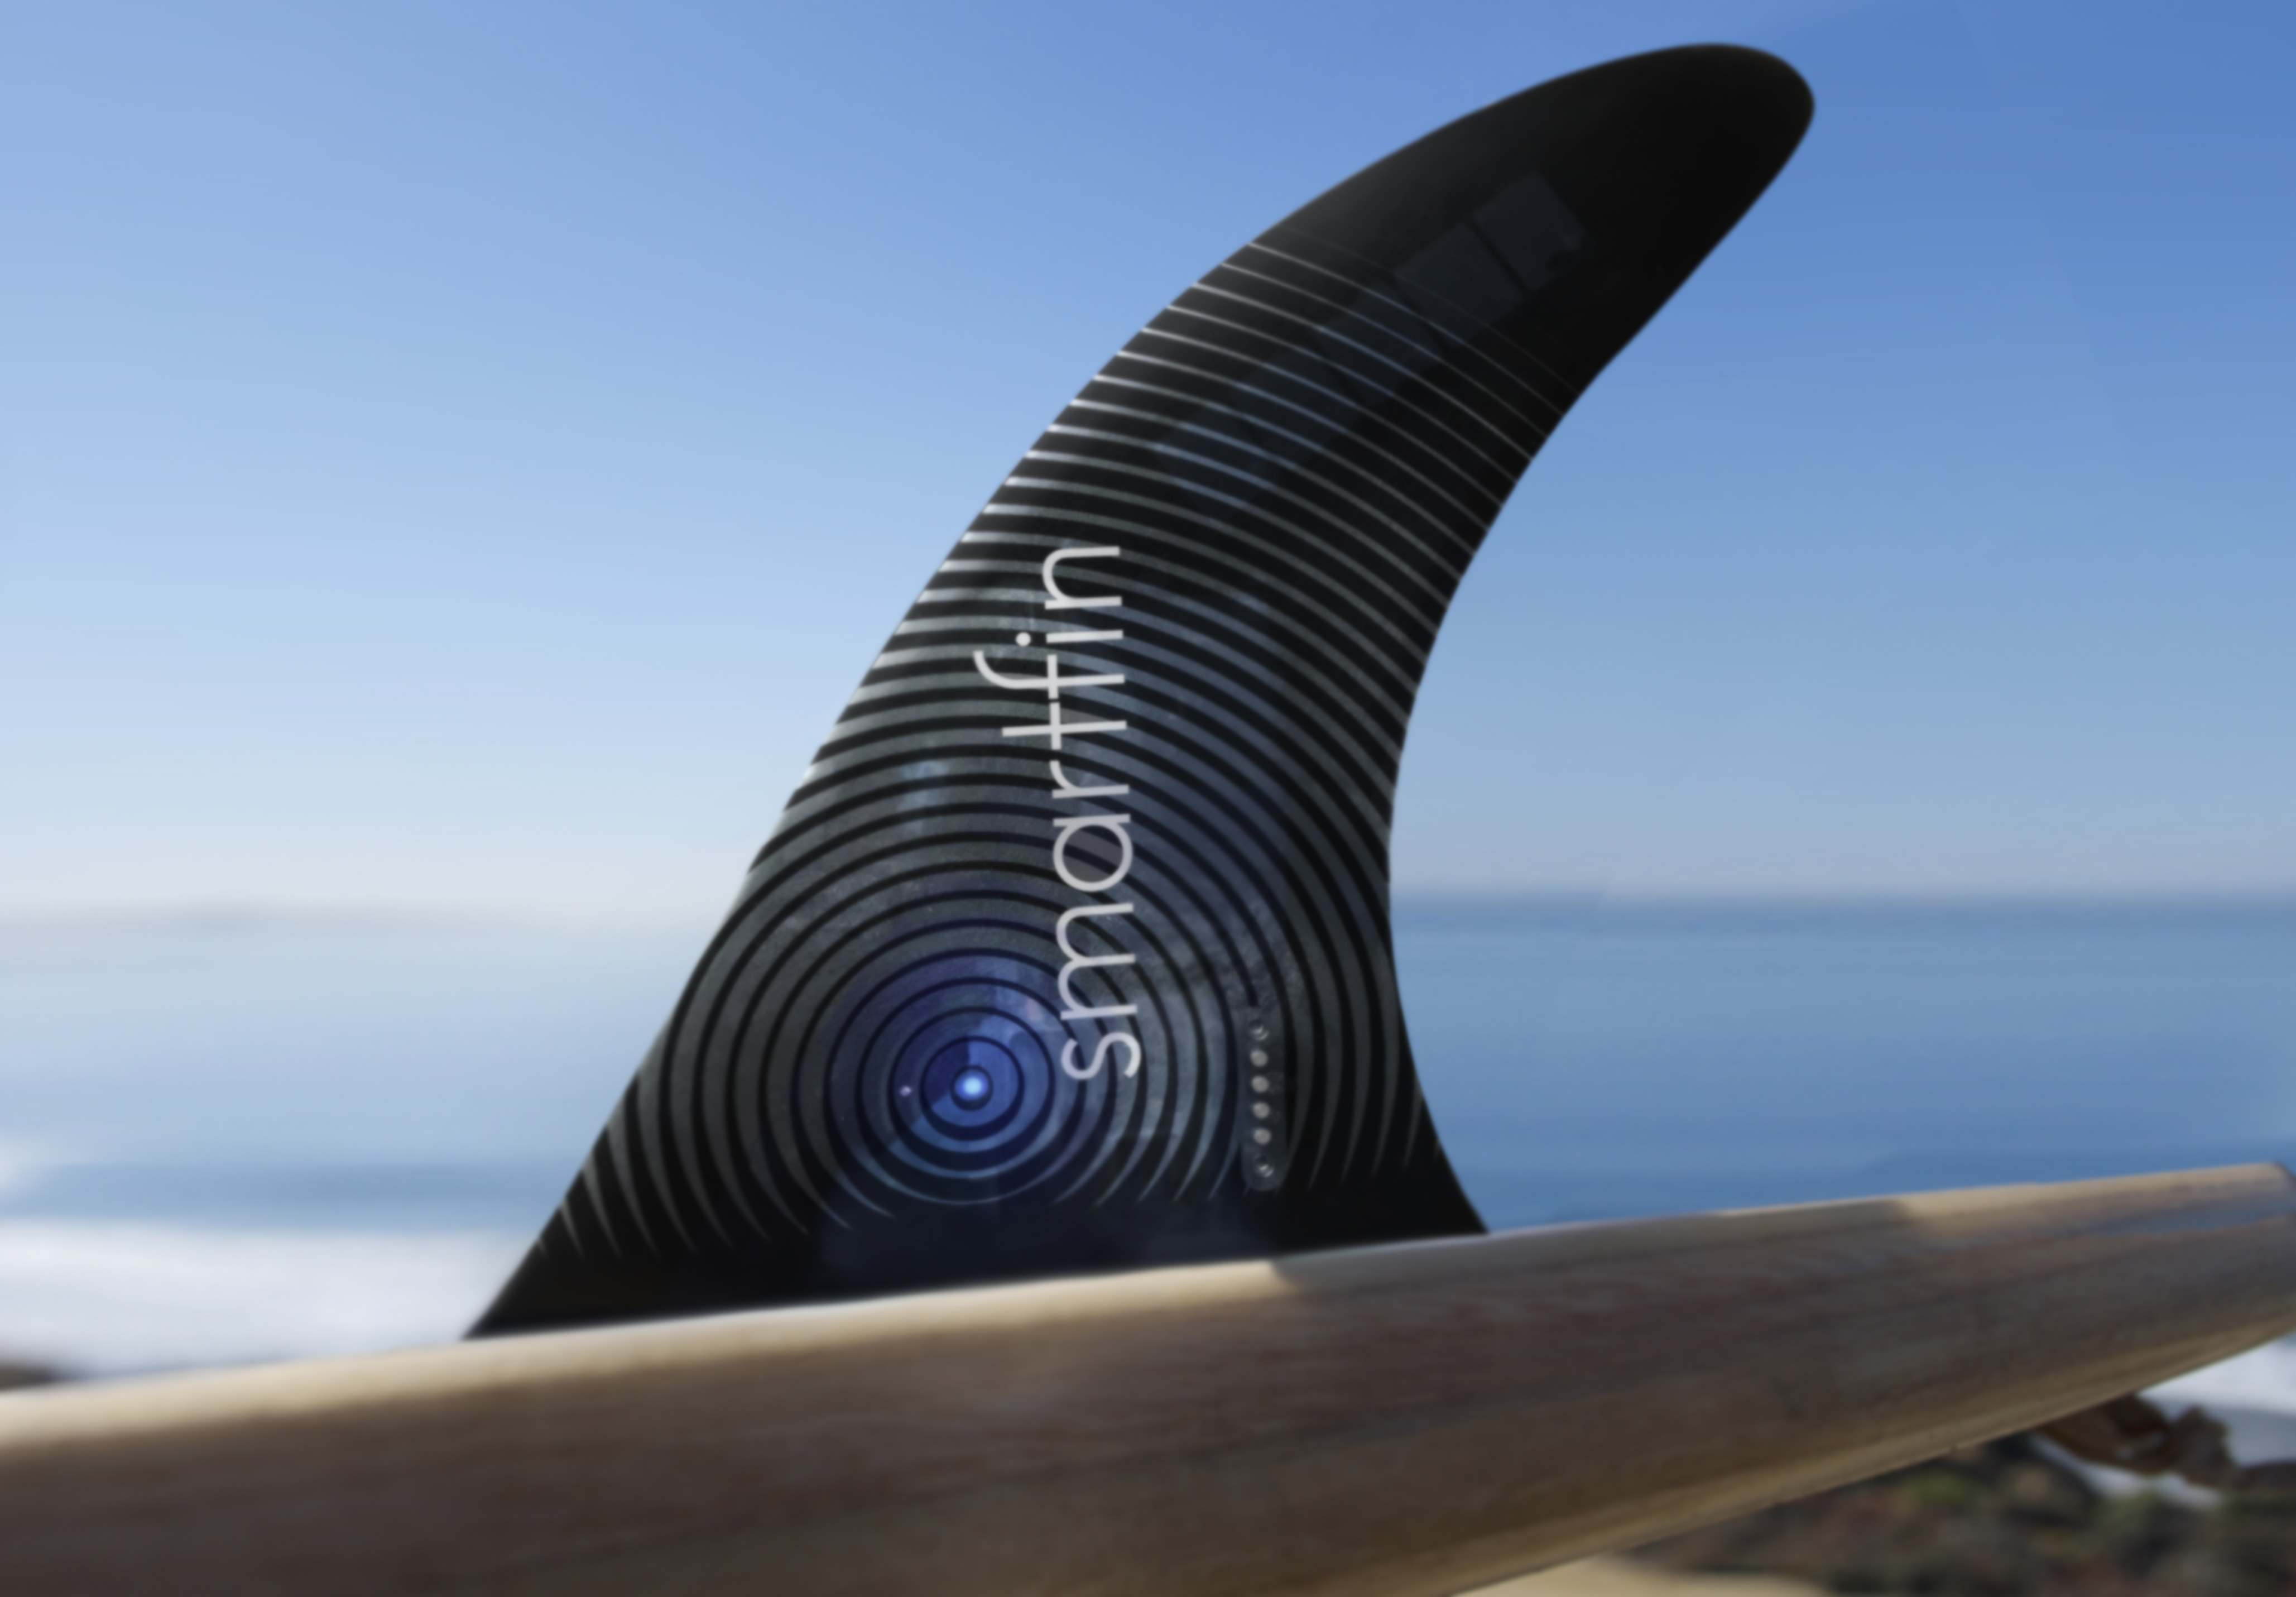 A close-up of a black surfboard fin with the Smartfin logo on it and the ocean in the background.